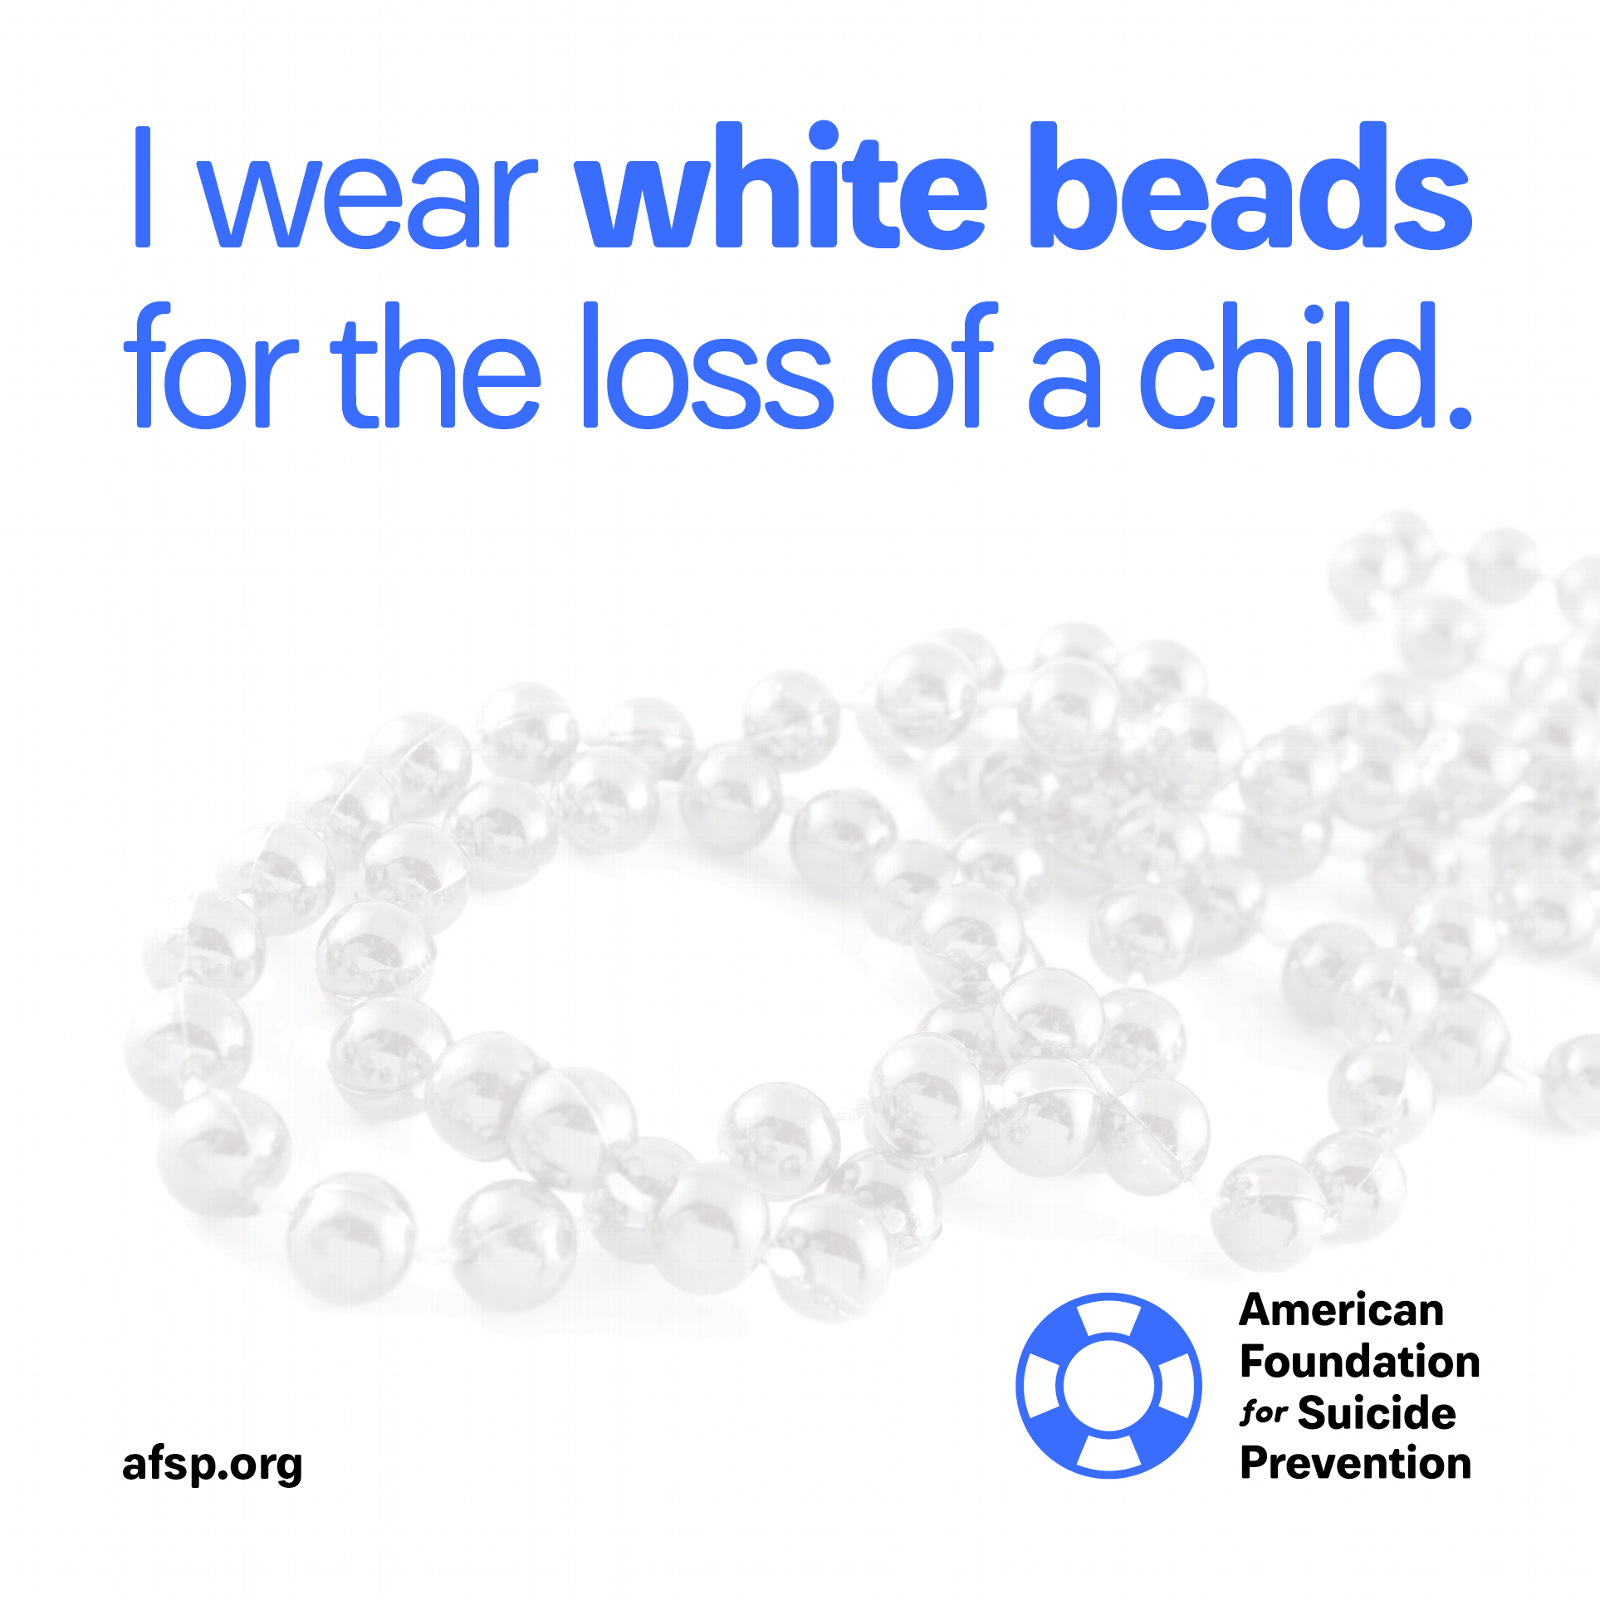 White beads for the loss of a child